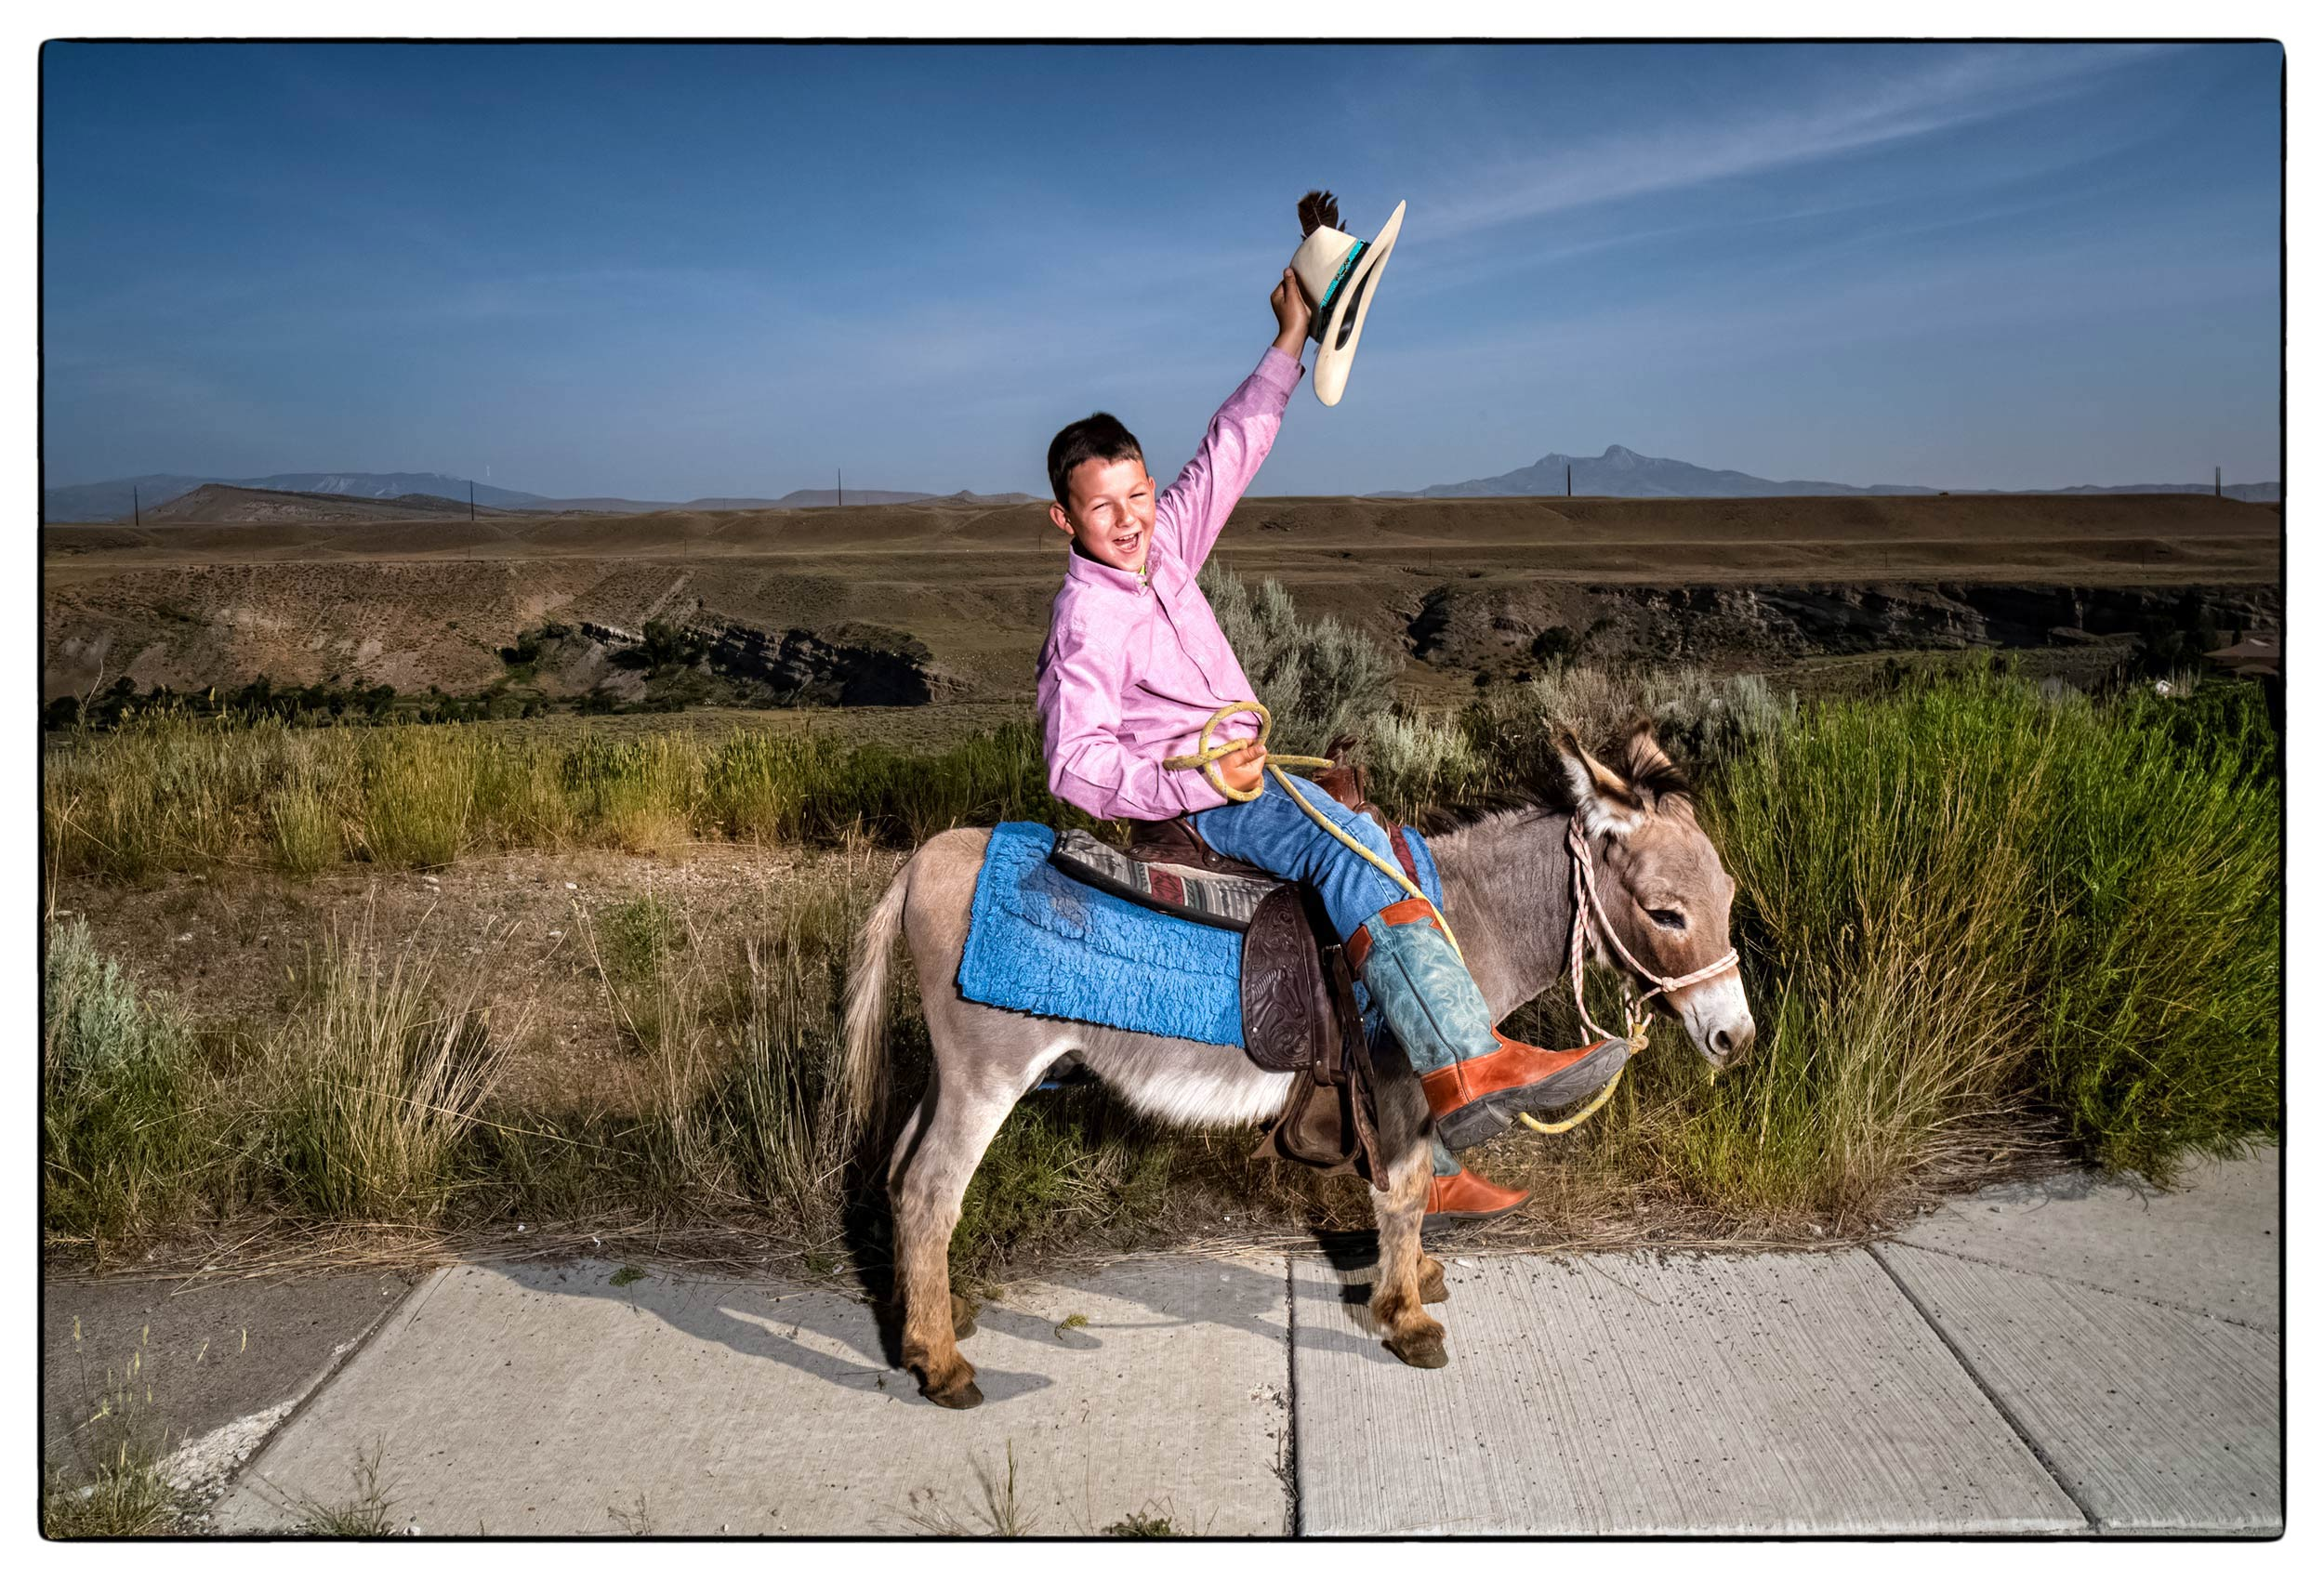 a-boy-celebrates-the-fourth-of-july-by-riding-a-donkey-in-the-parade-in-cody-wyoming